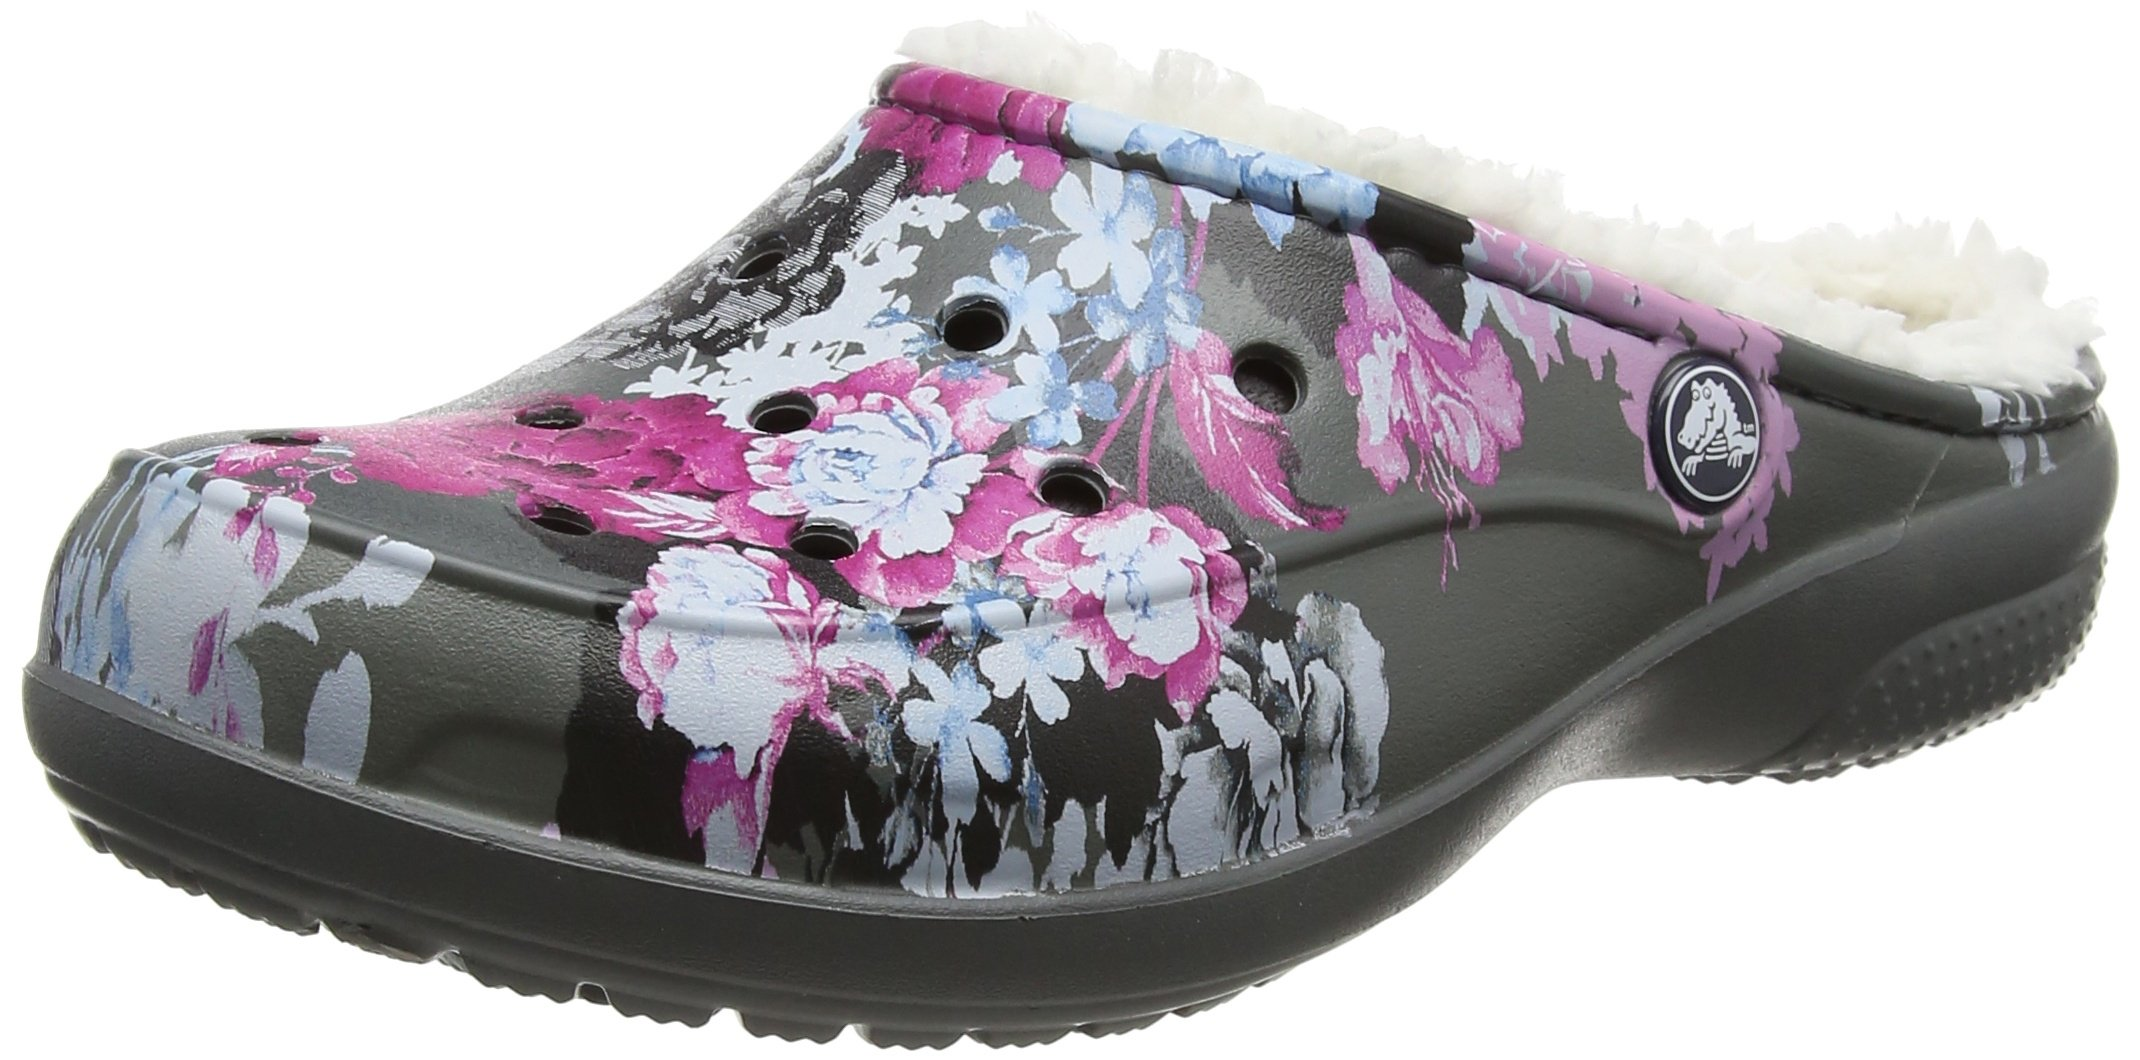 crocs Women's Freesail Graphic Lined Mule, Floral/Slate Grey, 7 M US